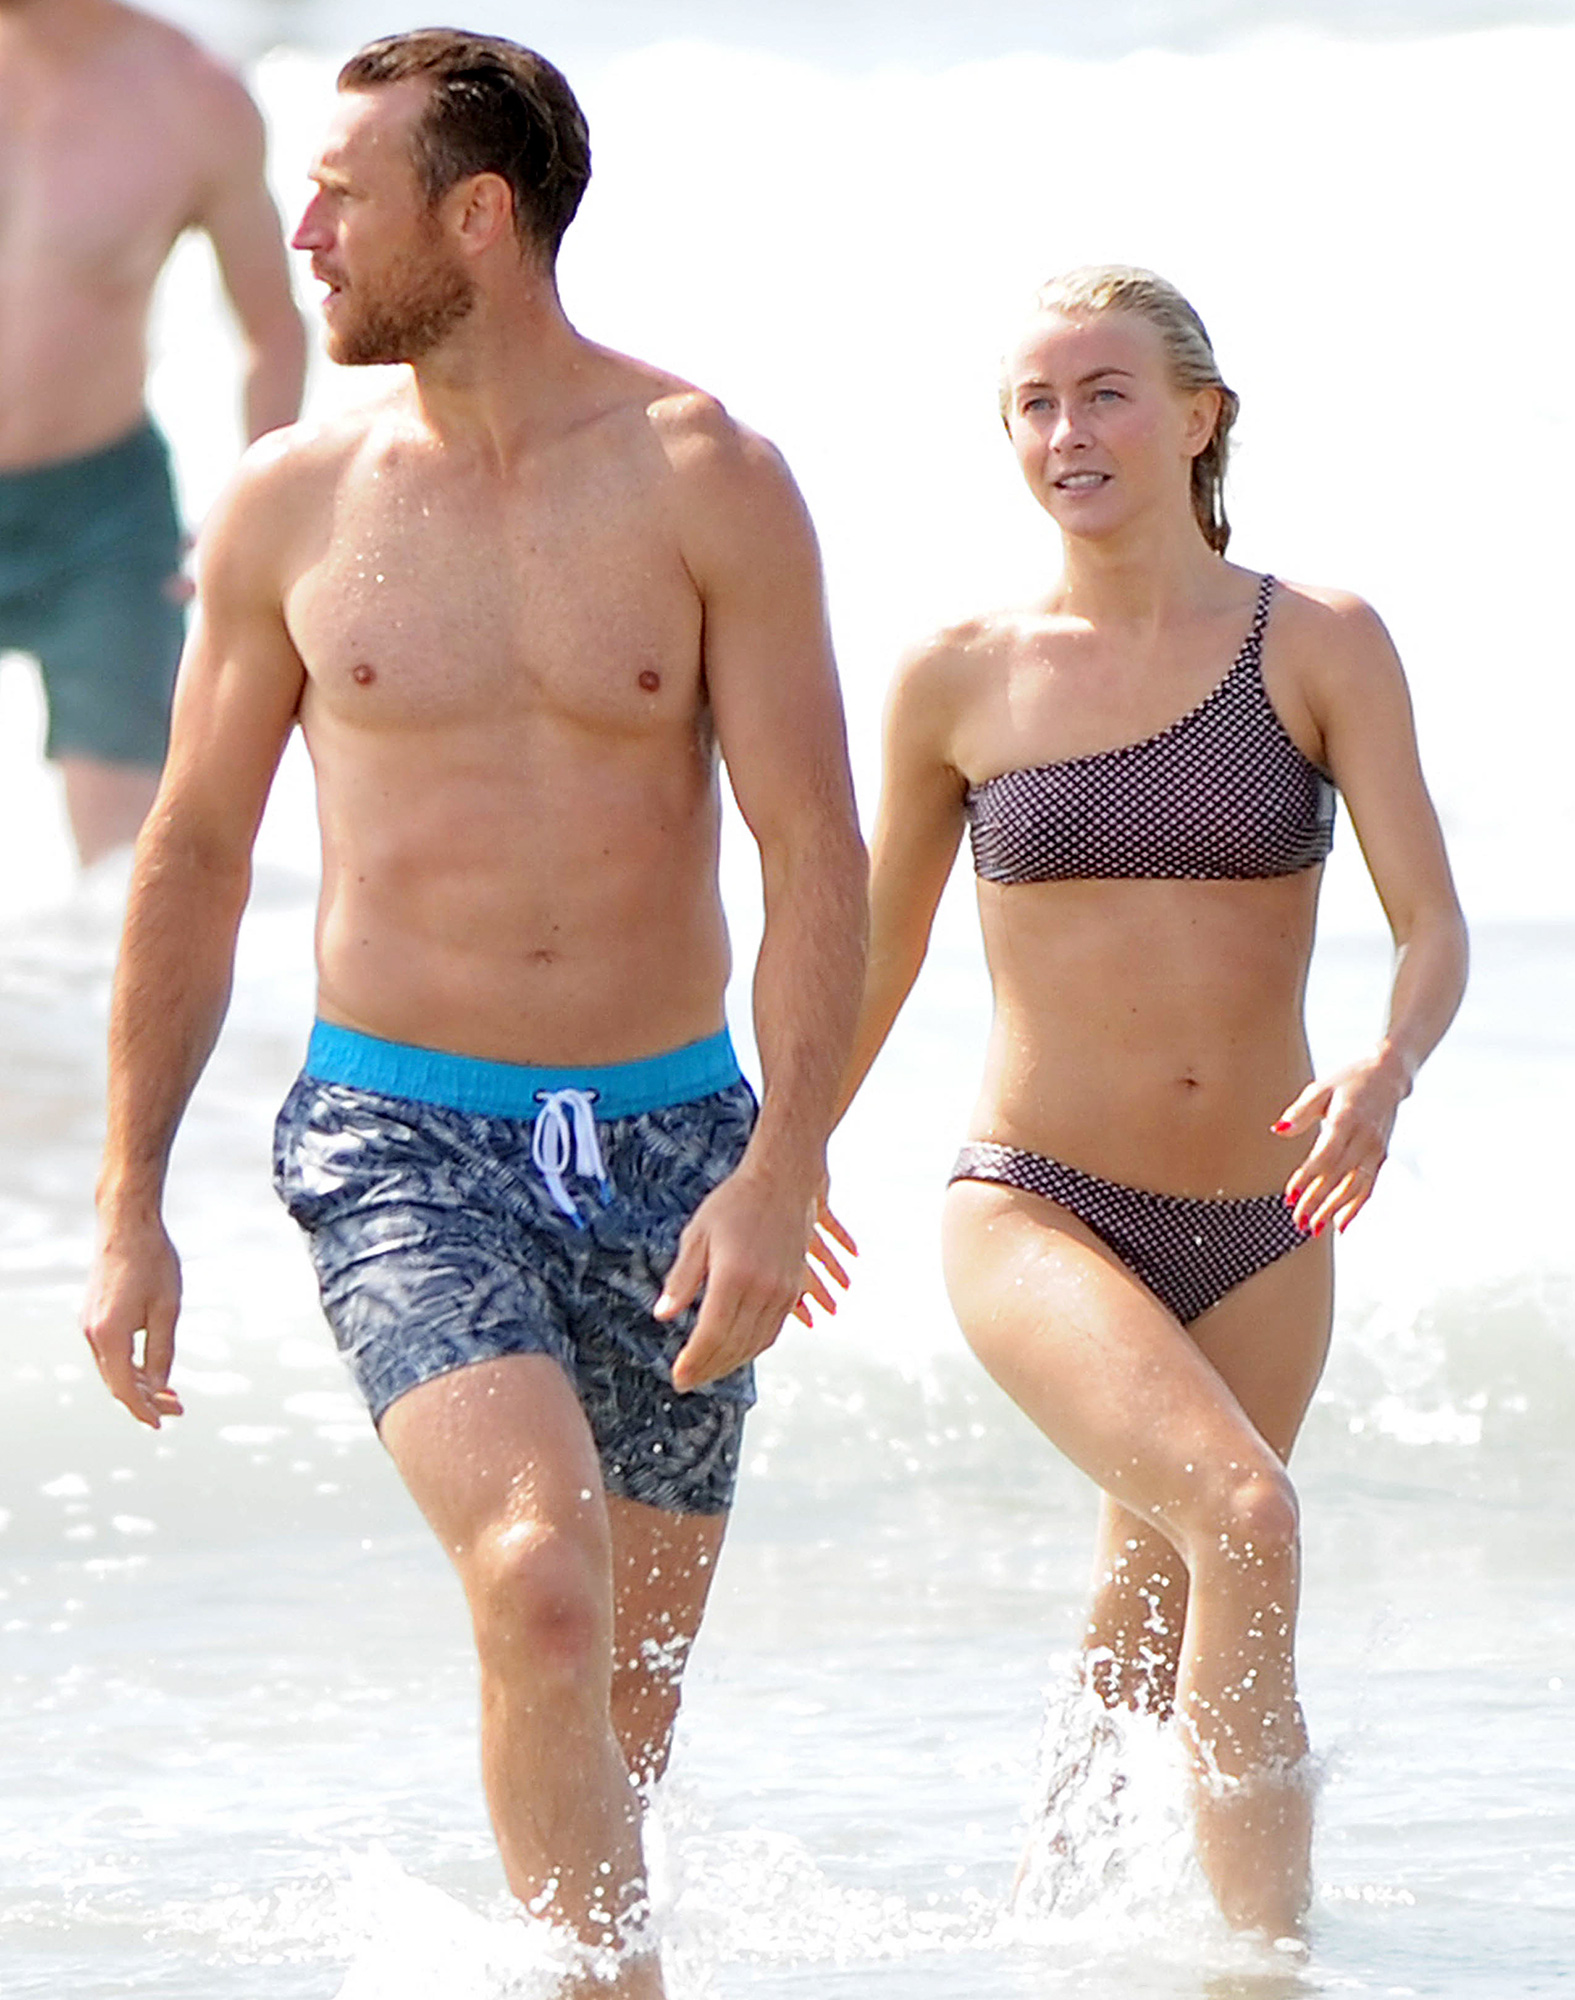 Julianne Hough slips into a bikini while bodysurfing with husband Brooks Laich at the beach over Labor Day